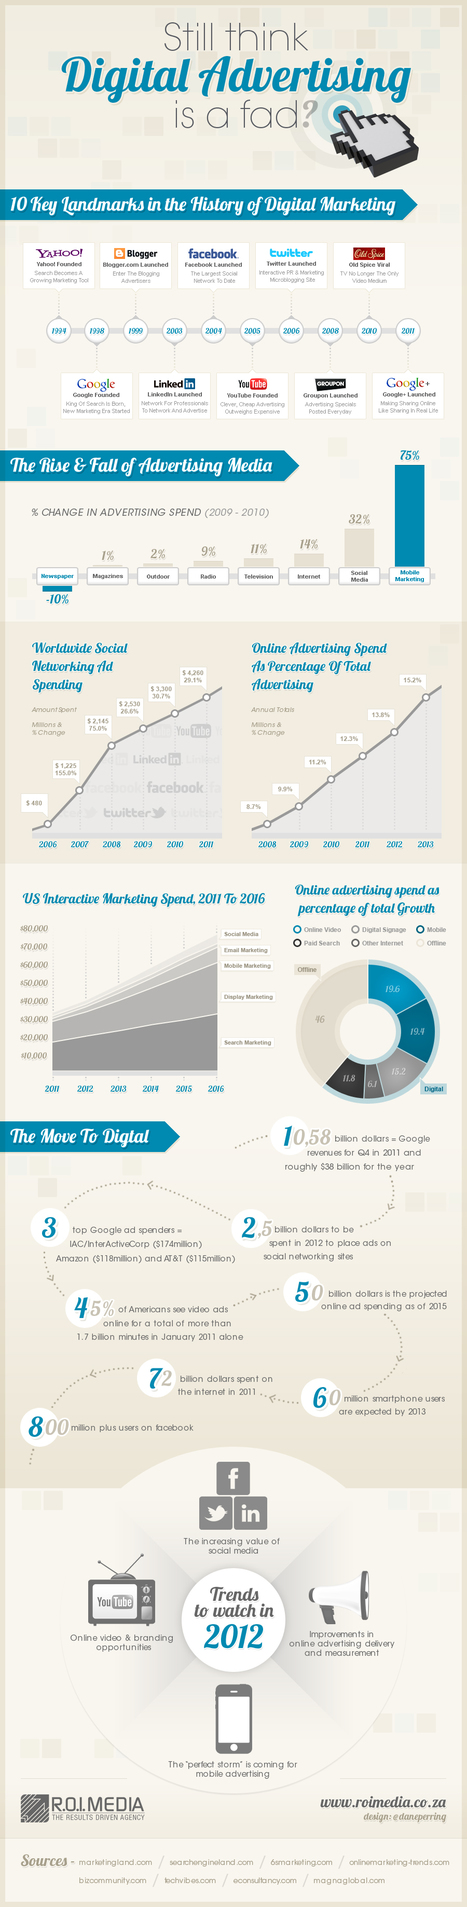 Still Think Digital Advertising Is A Fad?  #Infographic | Social Media (network, technology, blog, community, virtual reality, etc...) | Scoop.it